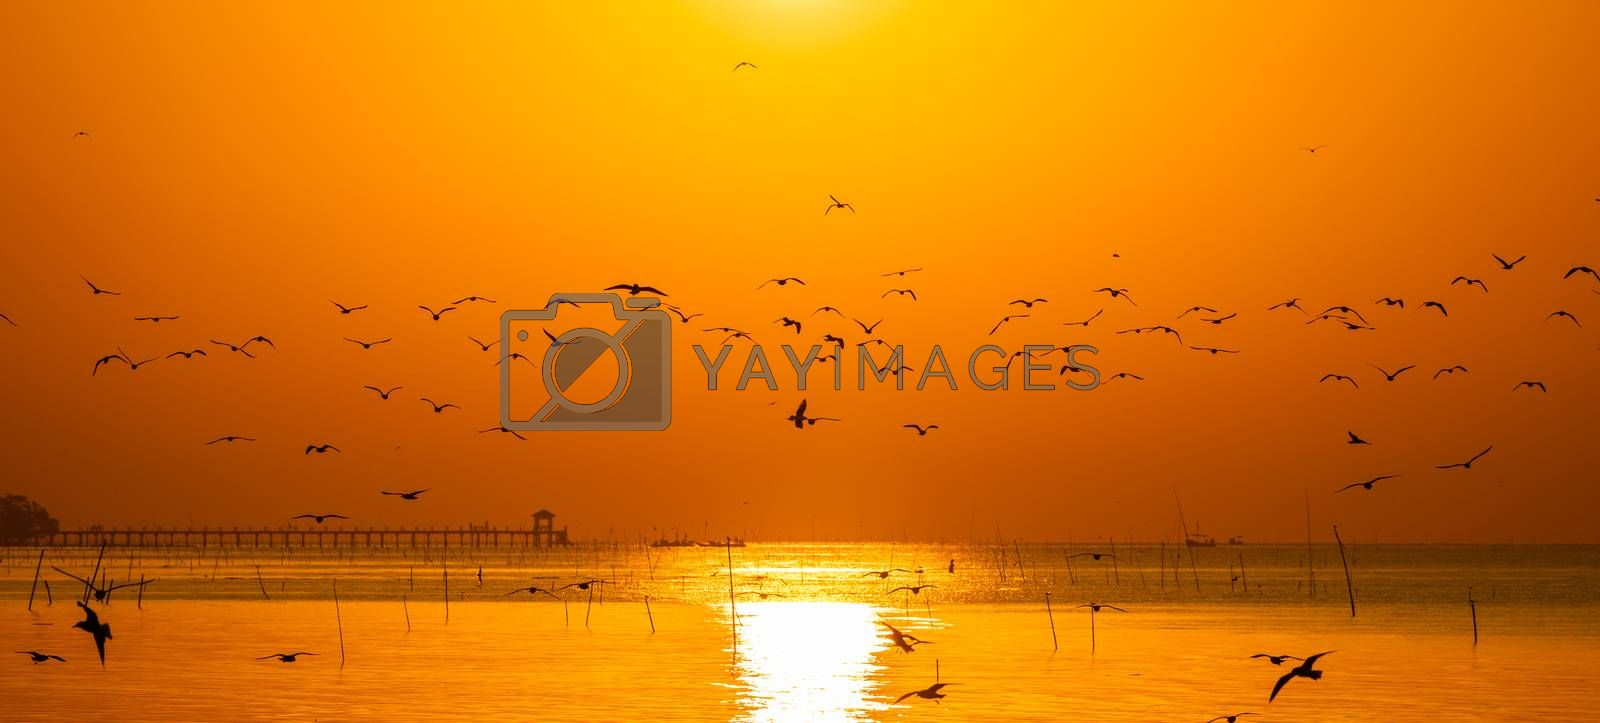 Panoramic scene of silhouetted seagulls flying together over beach surface with bright orange sky at sunrise.